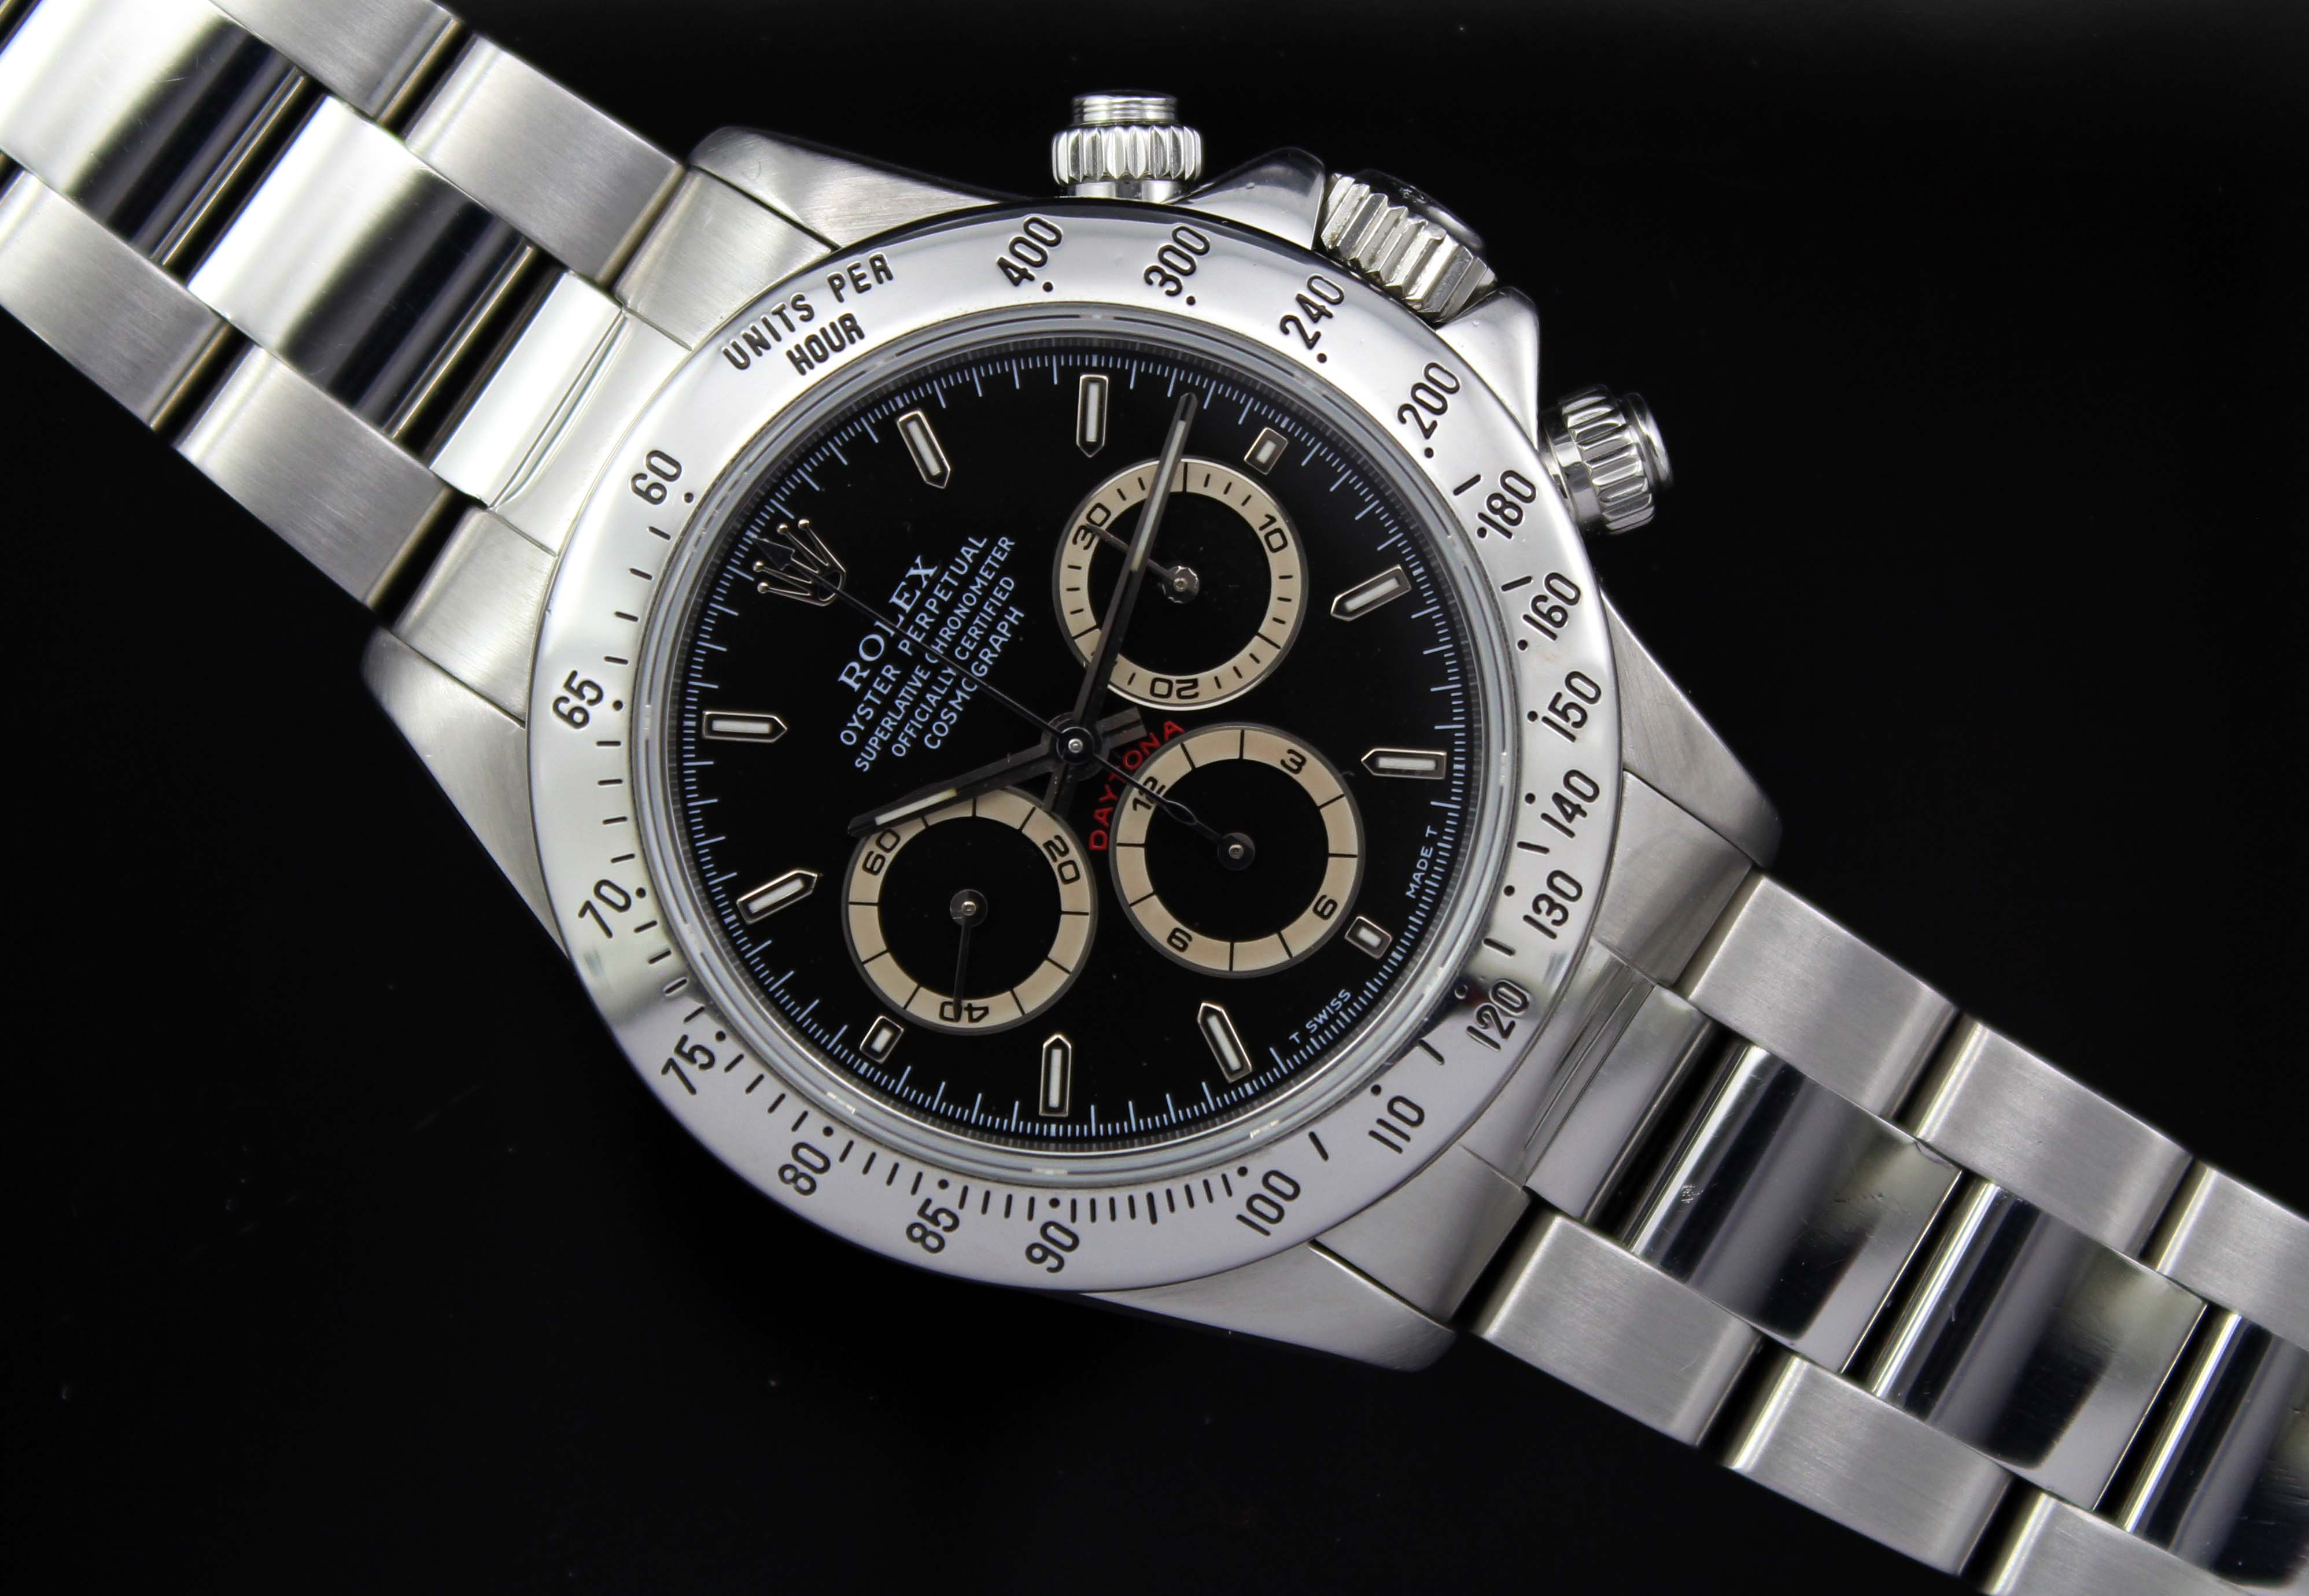 b431c735524 Rolex Daytona Zenith 16520 – Vip Chrono Watches